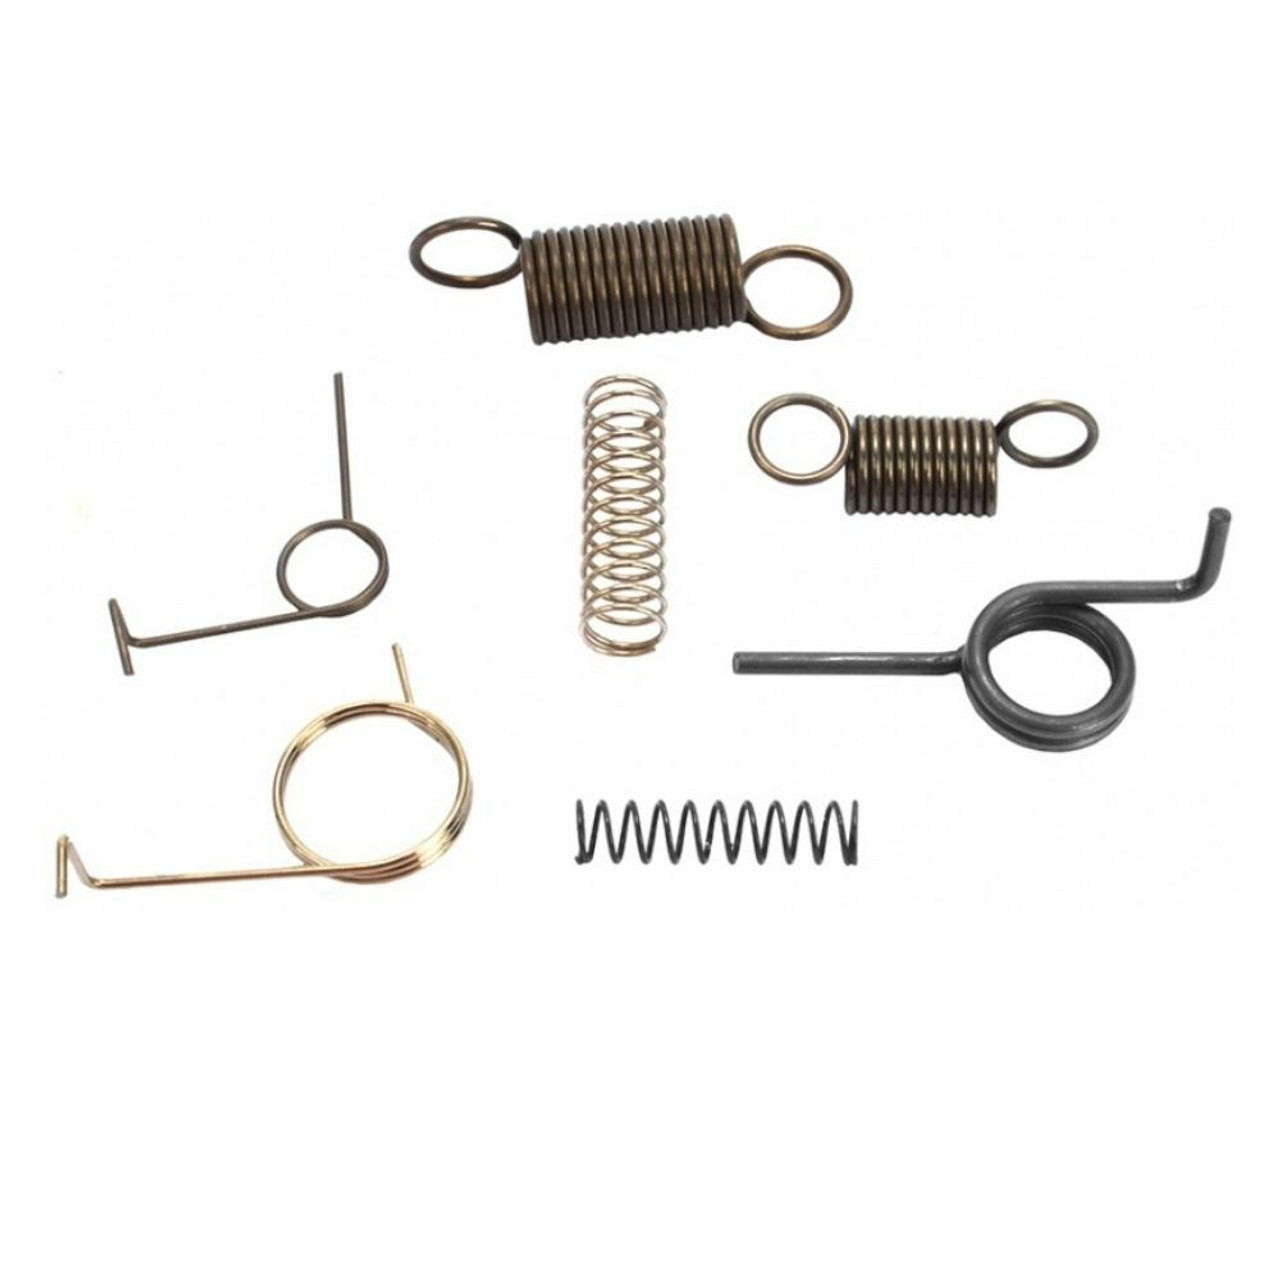 AEG Gearbox Spring Sets